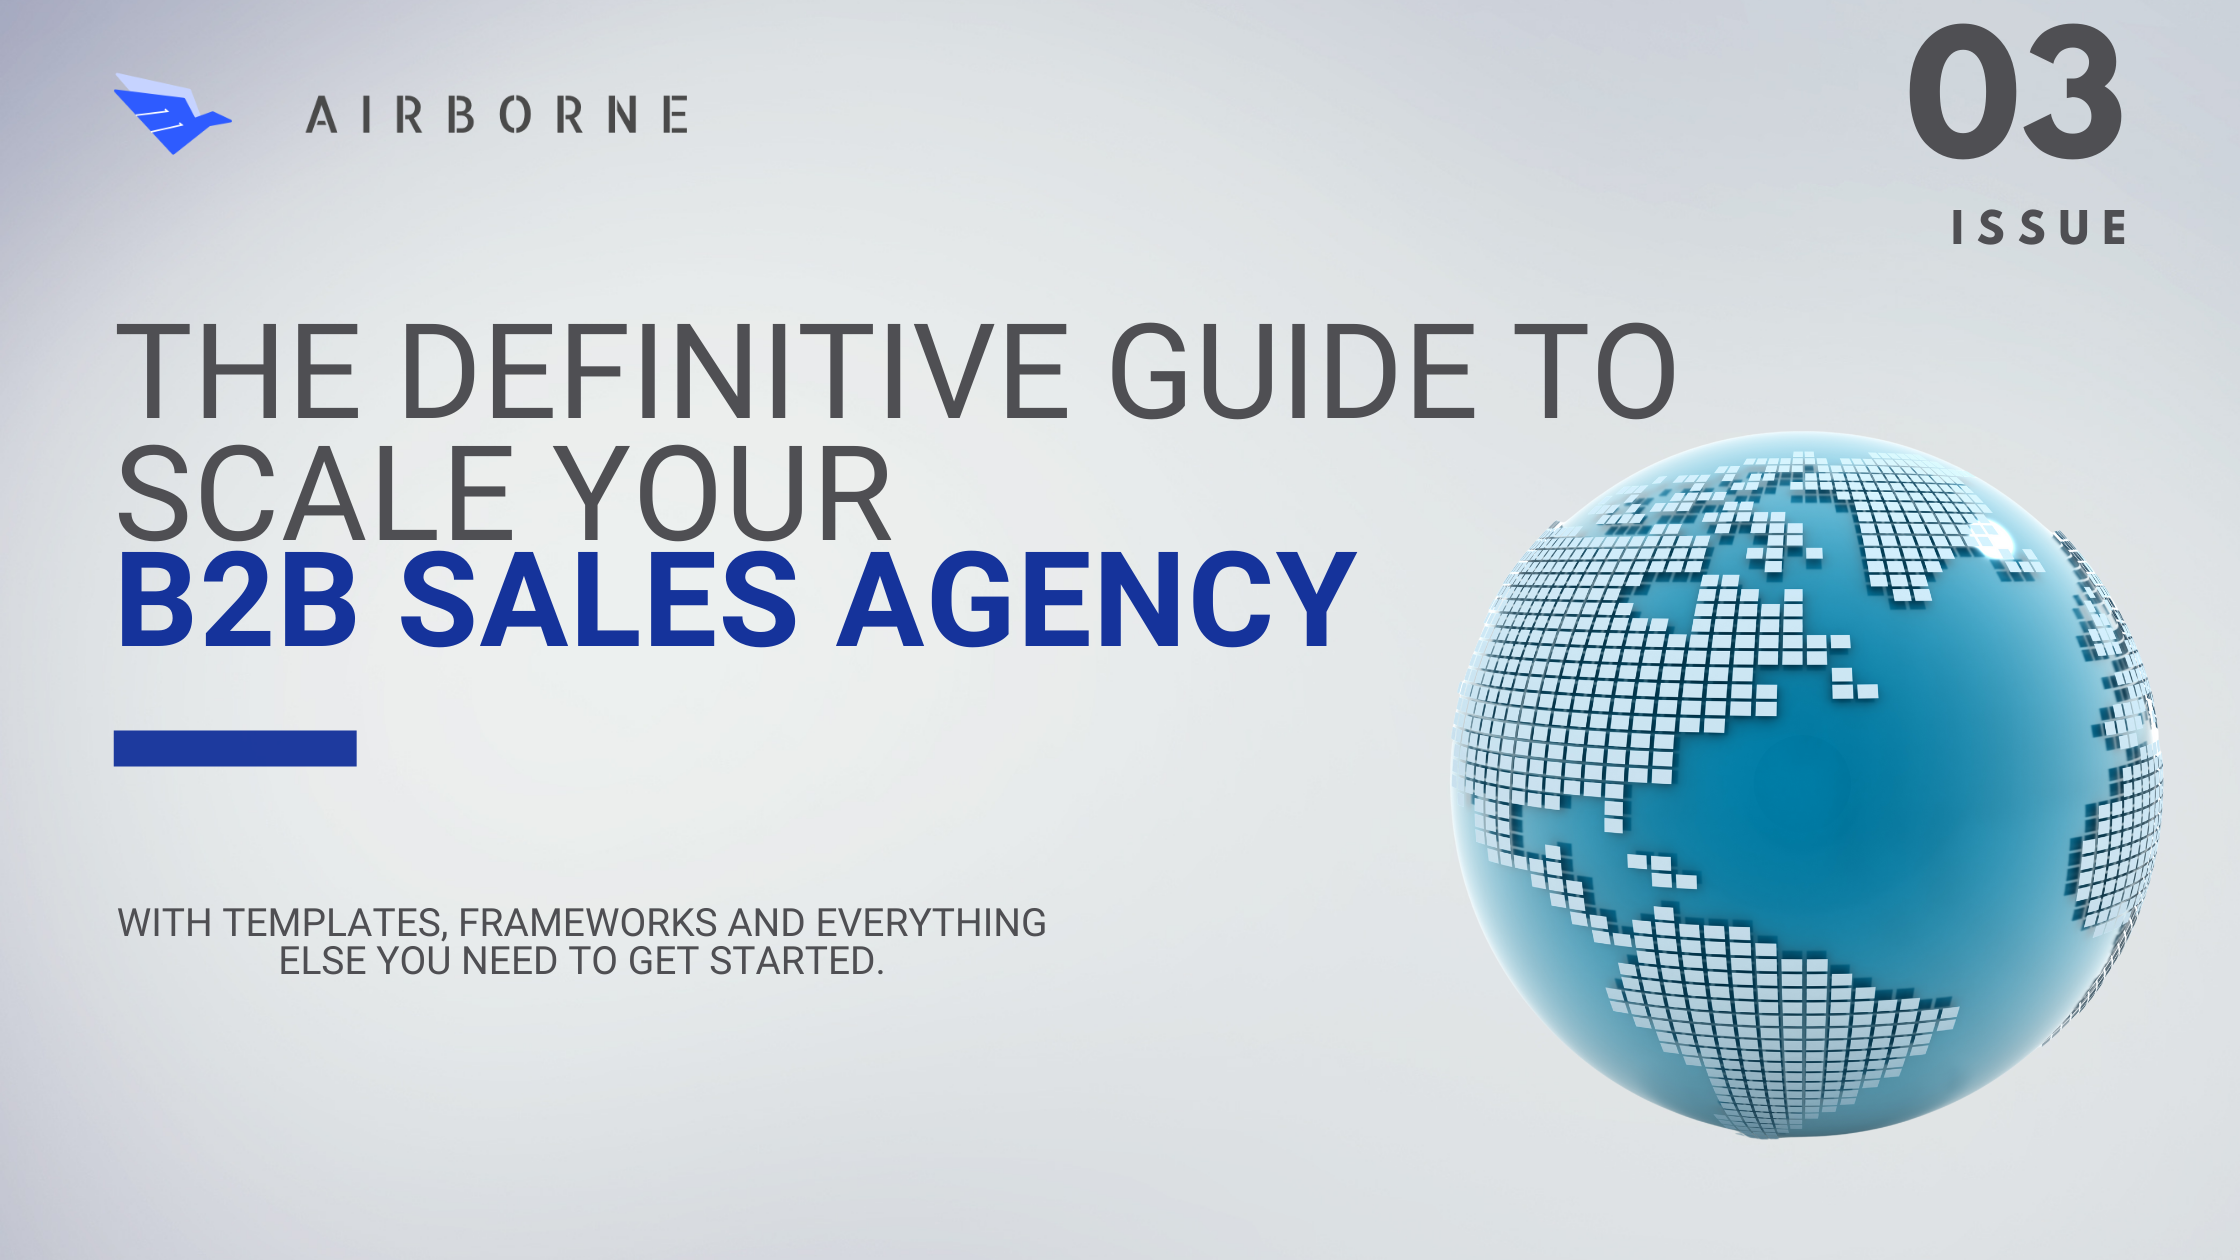 The Definitive Guide to Scale Your B2B Sales Agency